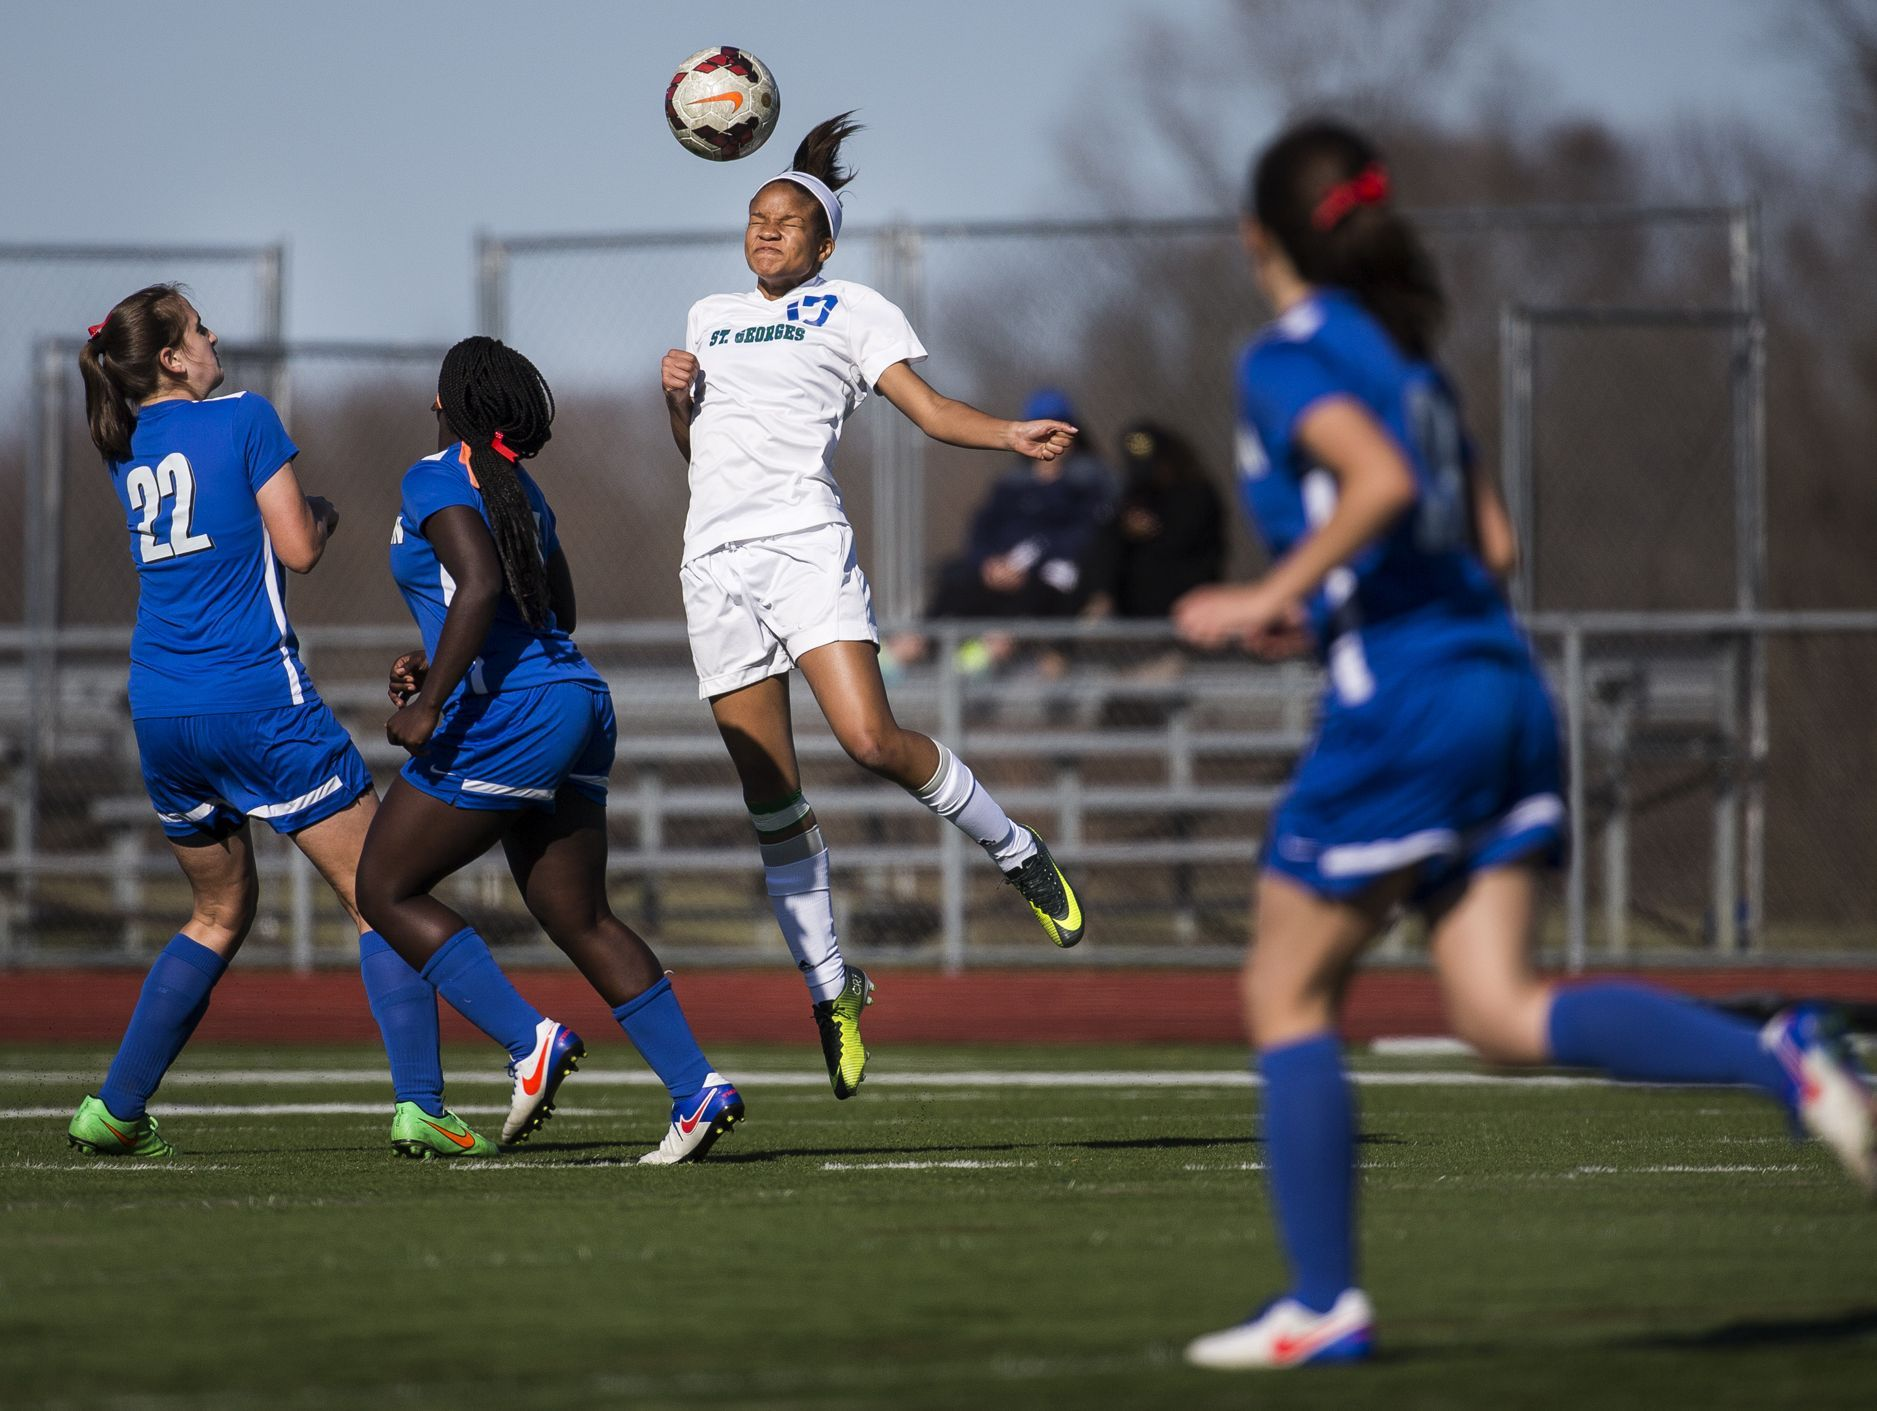 St. Georges' Paige-Marie Davis heads the ball over a pair of Middletown players in the second half of Middletown's 4-0 win over St. Georges at St. Georges Technical High School in Middletown on Wednesday afternoon.